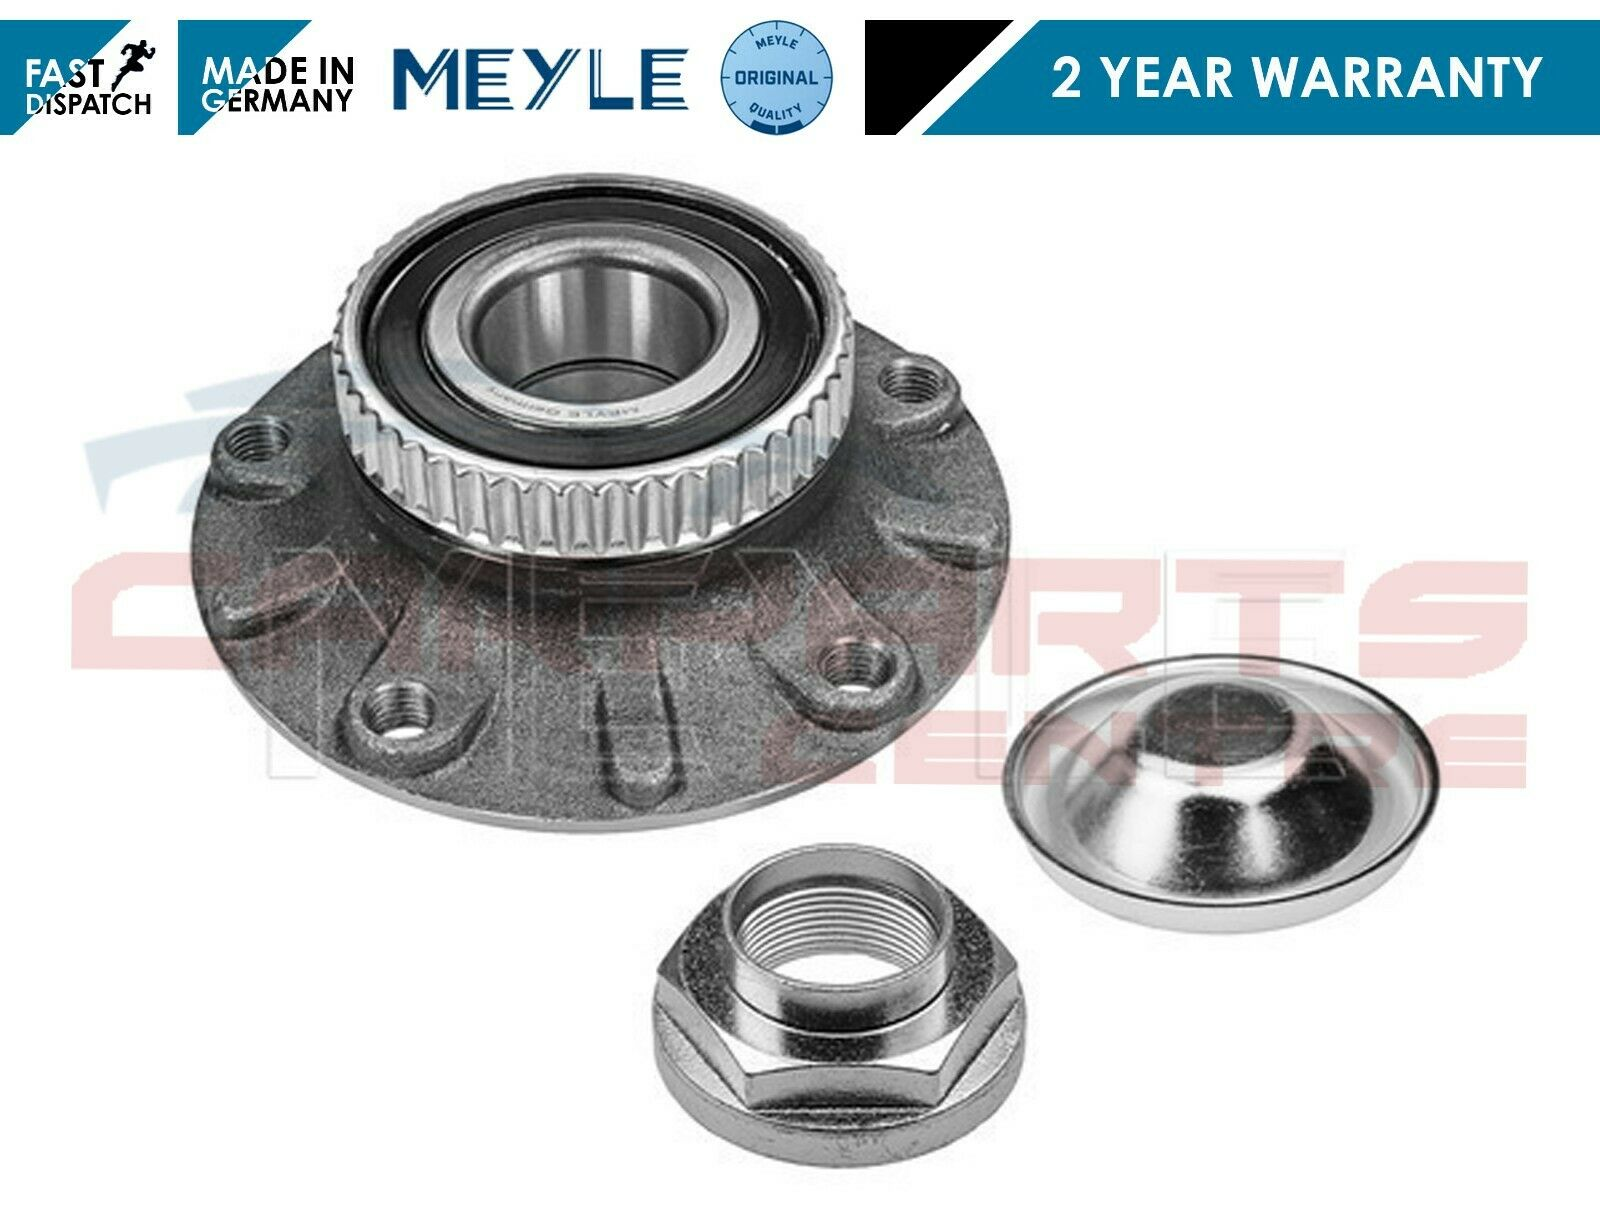 FOR BMW 3 SERIES SALOON TOURING COUPE E46 REAR WHEEL BEARING KIT MEYLE GERMANY